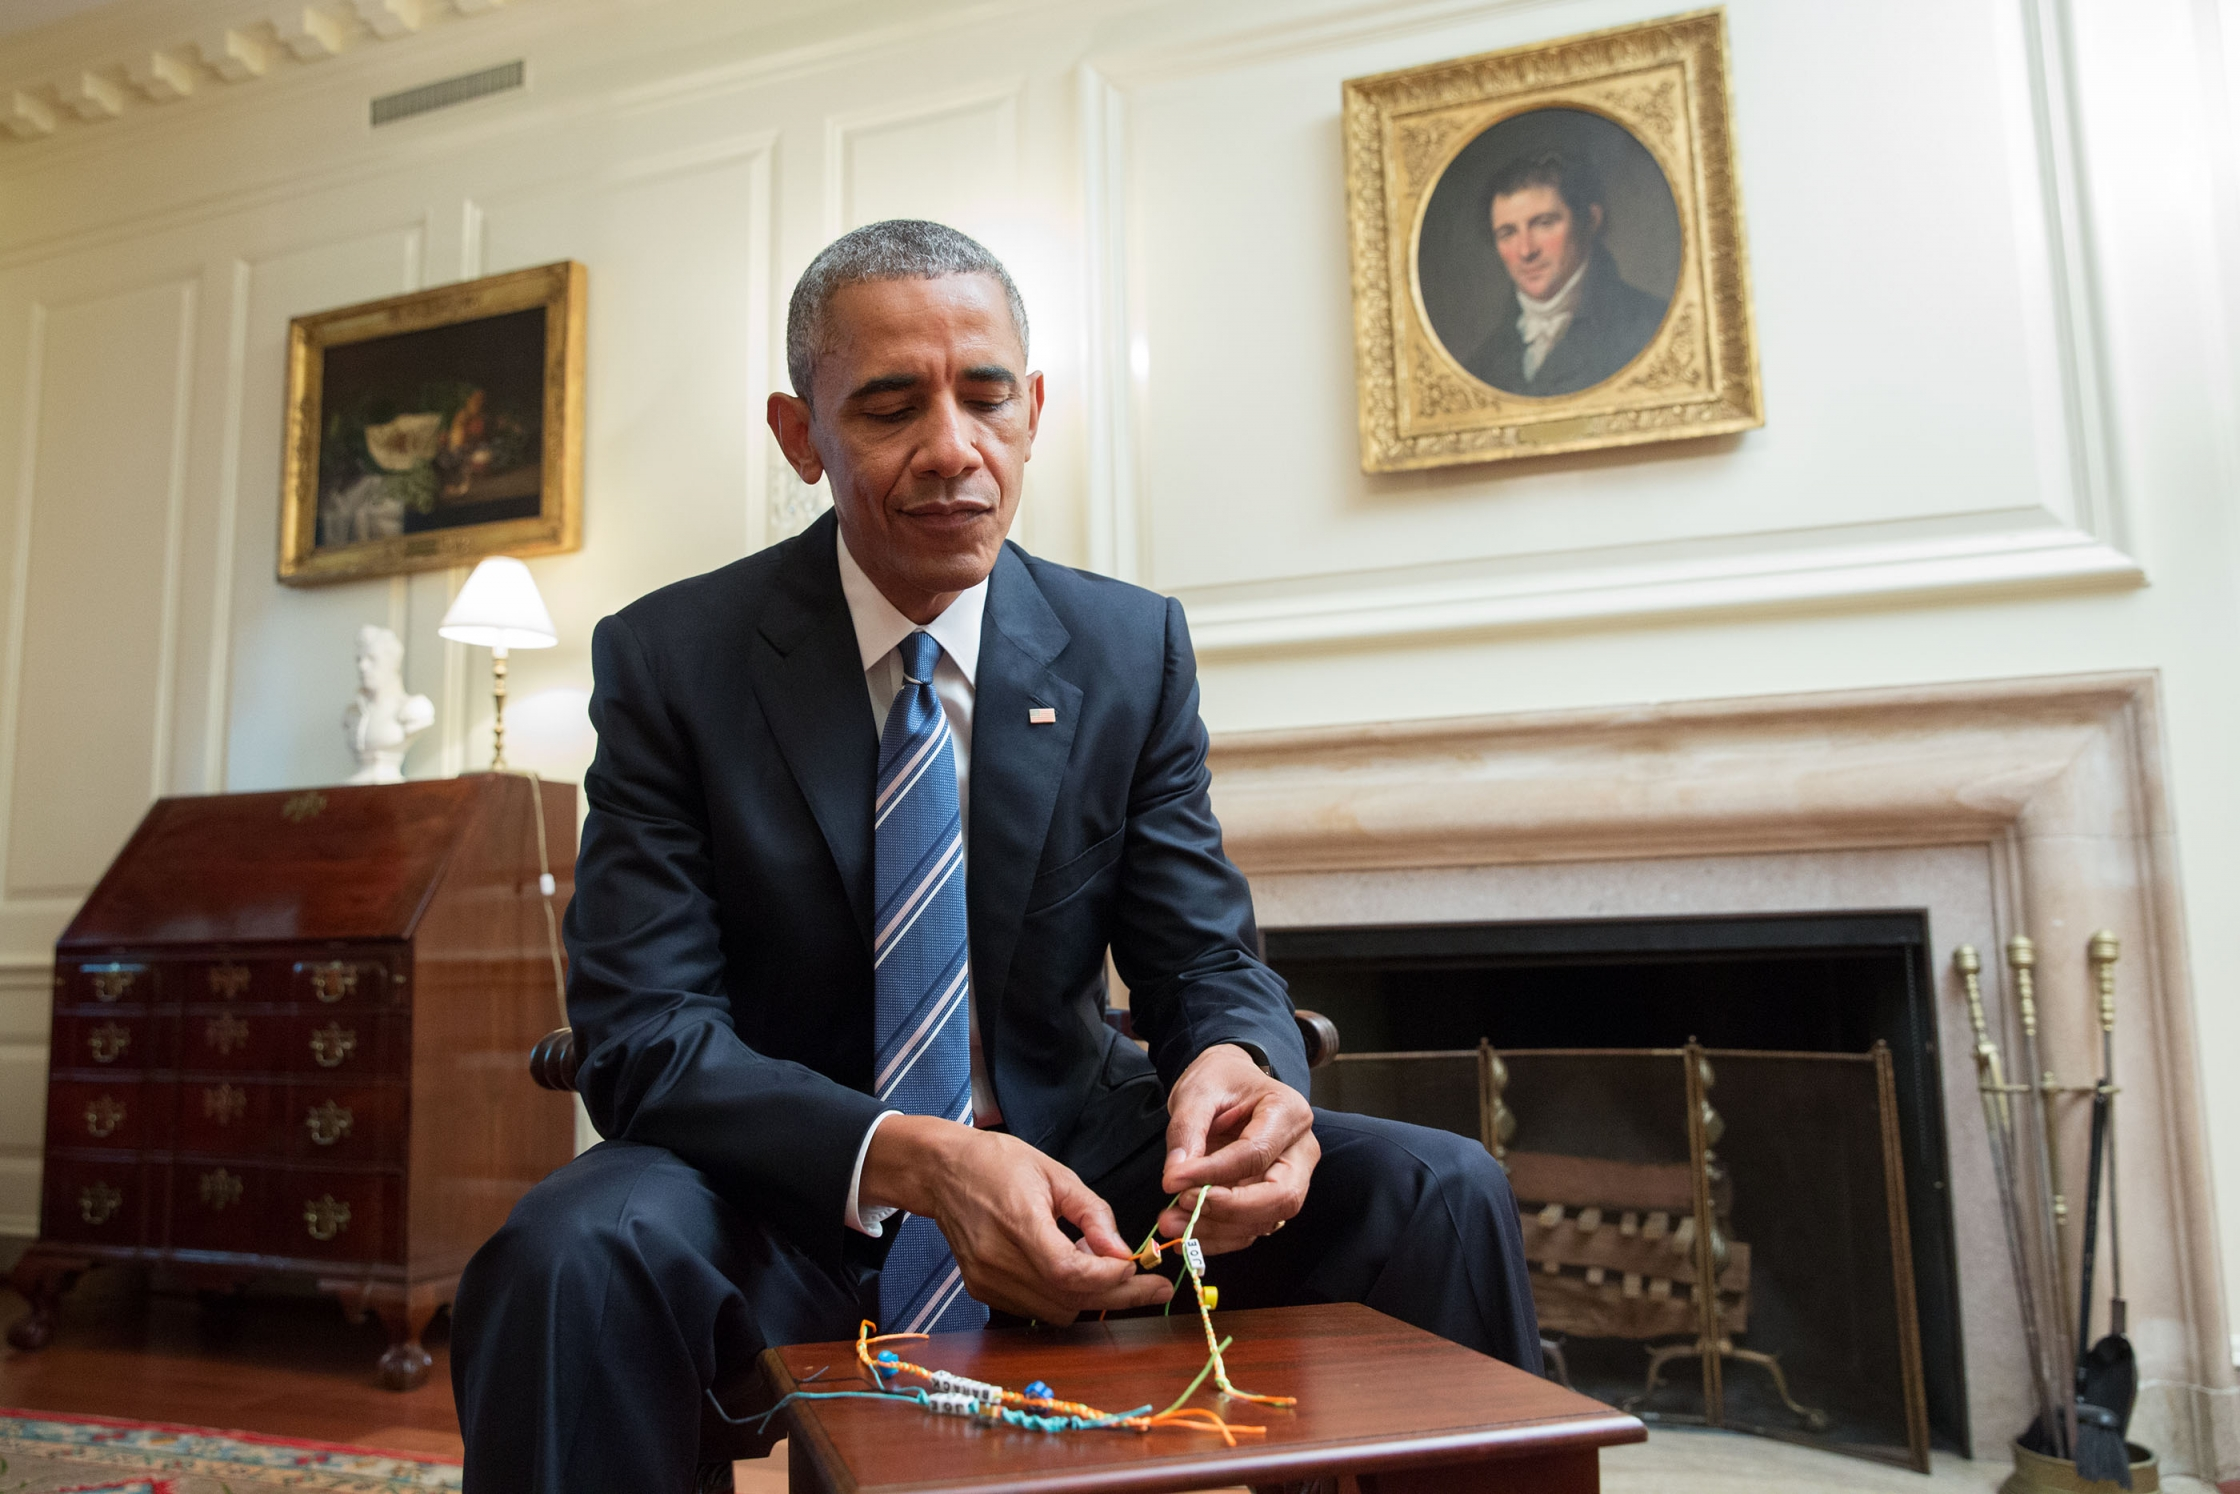 President Barack Obama makes a friendship bracelet while taping a video for Buzzfeed's TurnUptoVote Week, in the Map Room of the White House, June 23, 2016. (Official White House Photo by Amanda Lucidon)